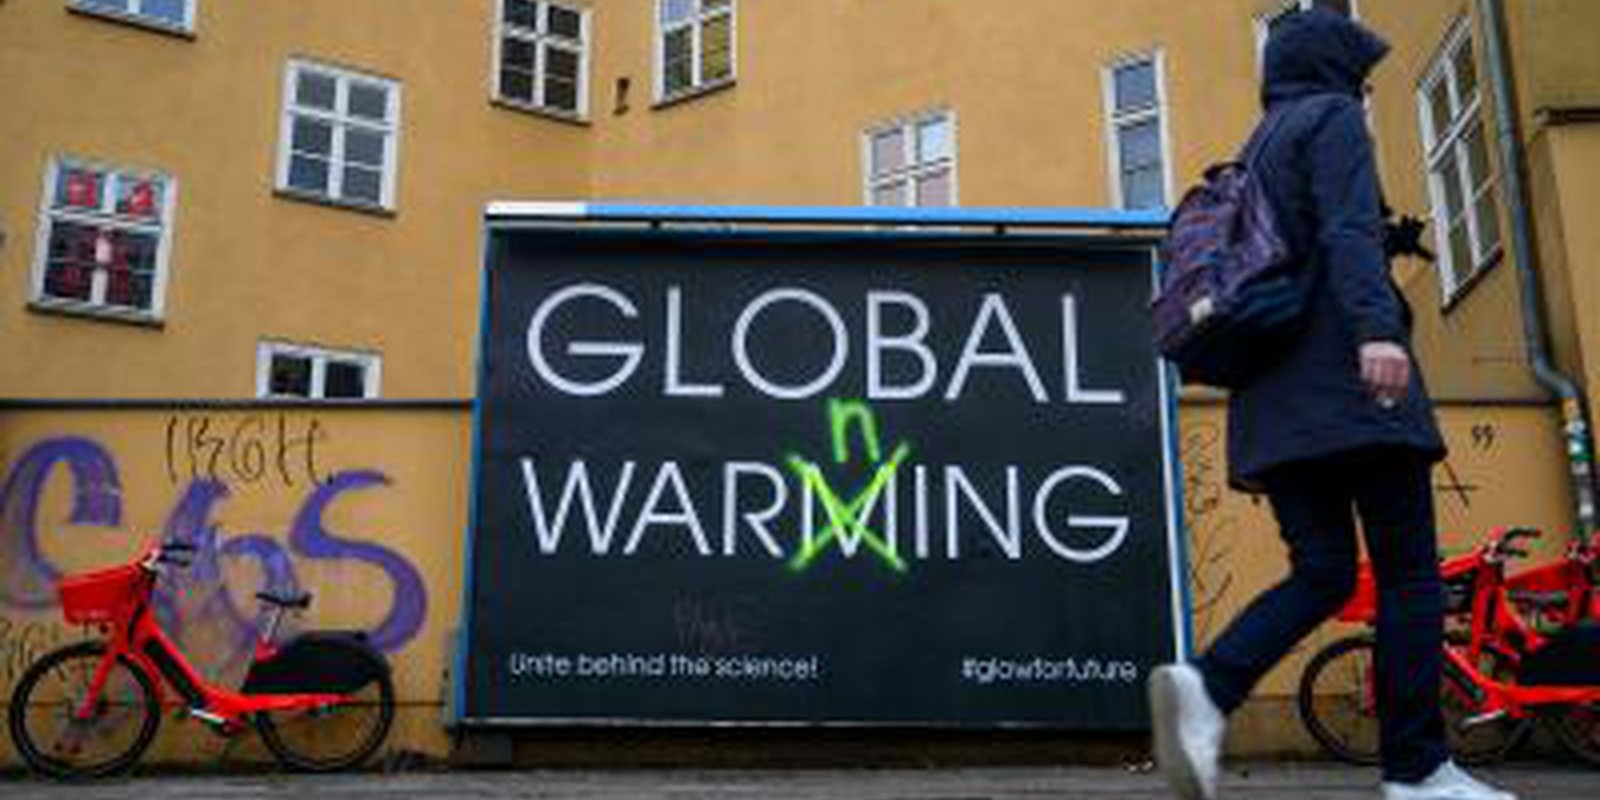 Image — Billboard in Berlin warnspeople to acknowledge all the challenges posed by global warming.Photo by JOHN MACDOUGALL/AFP via Getty Images.